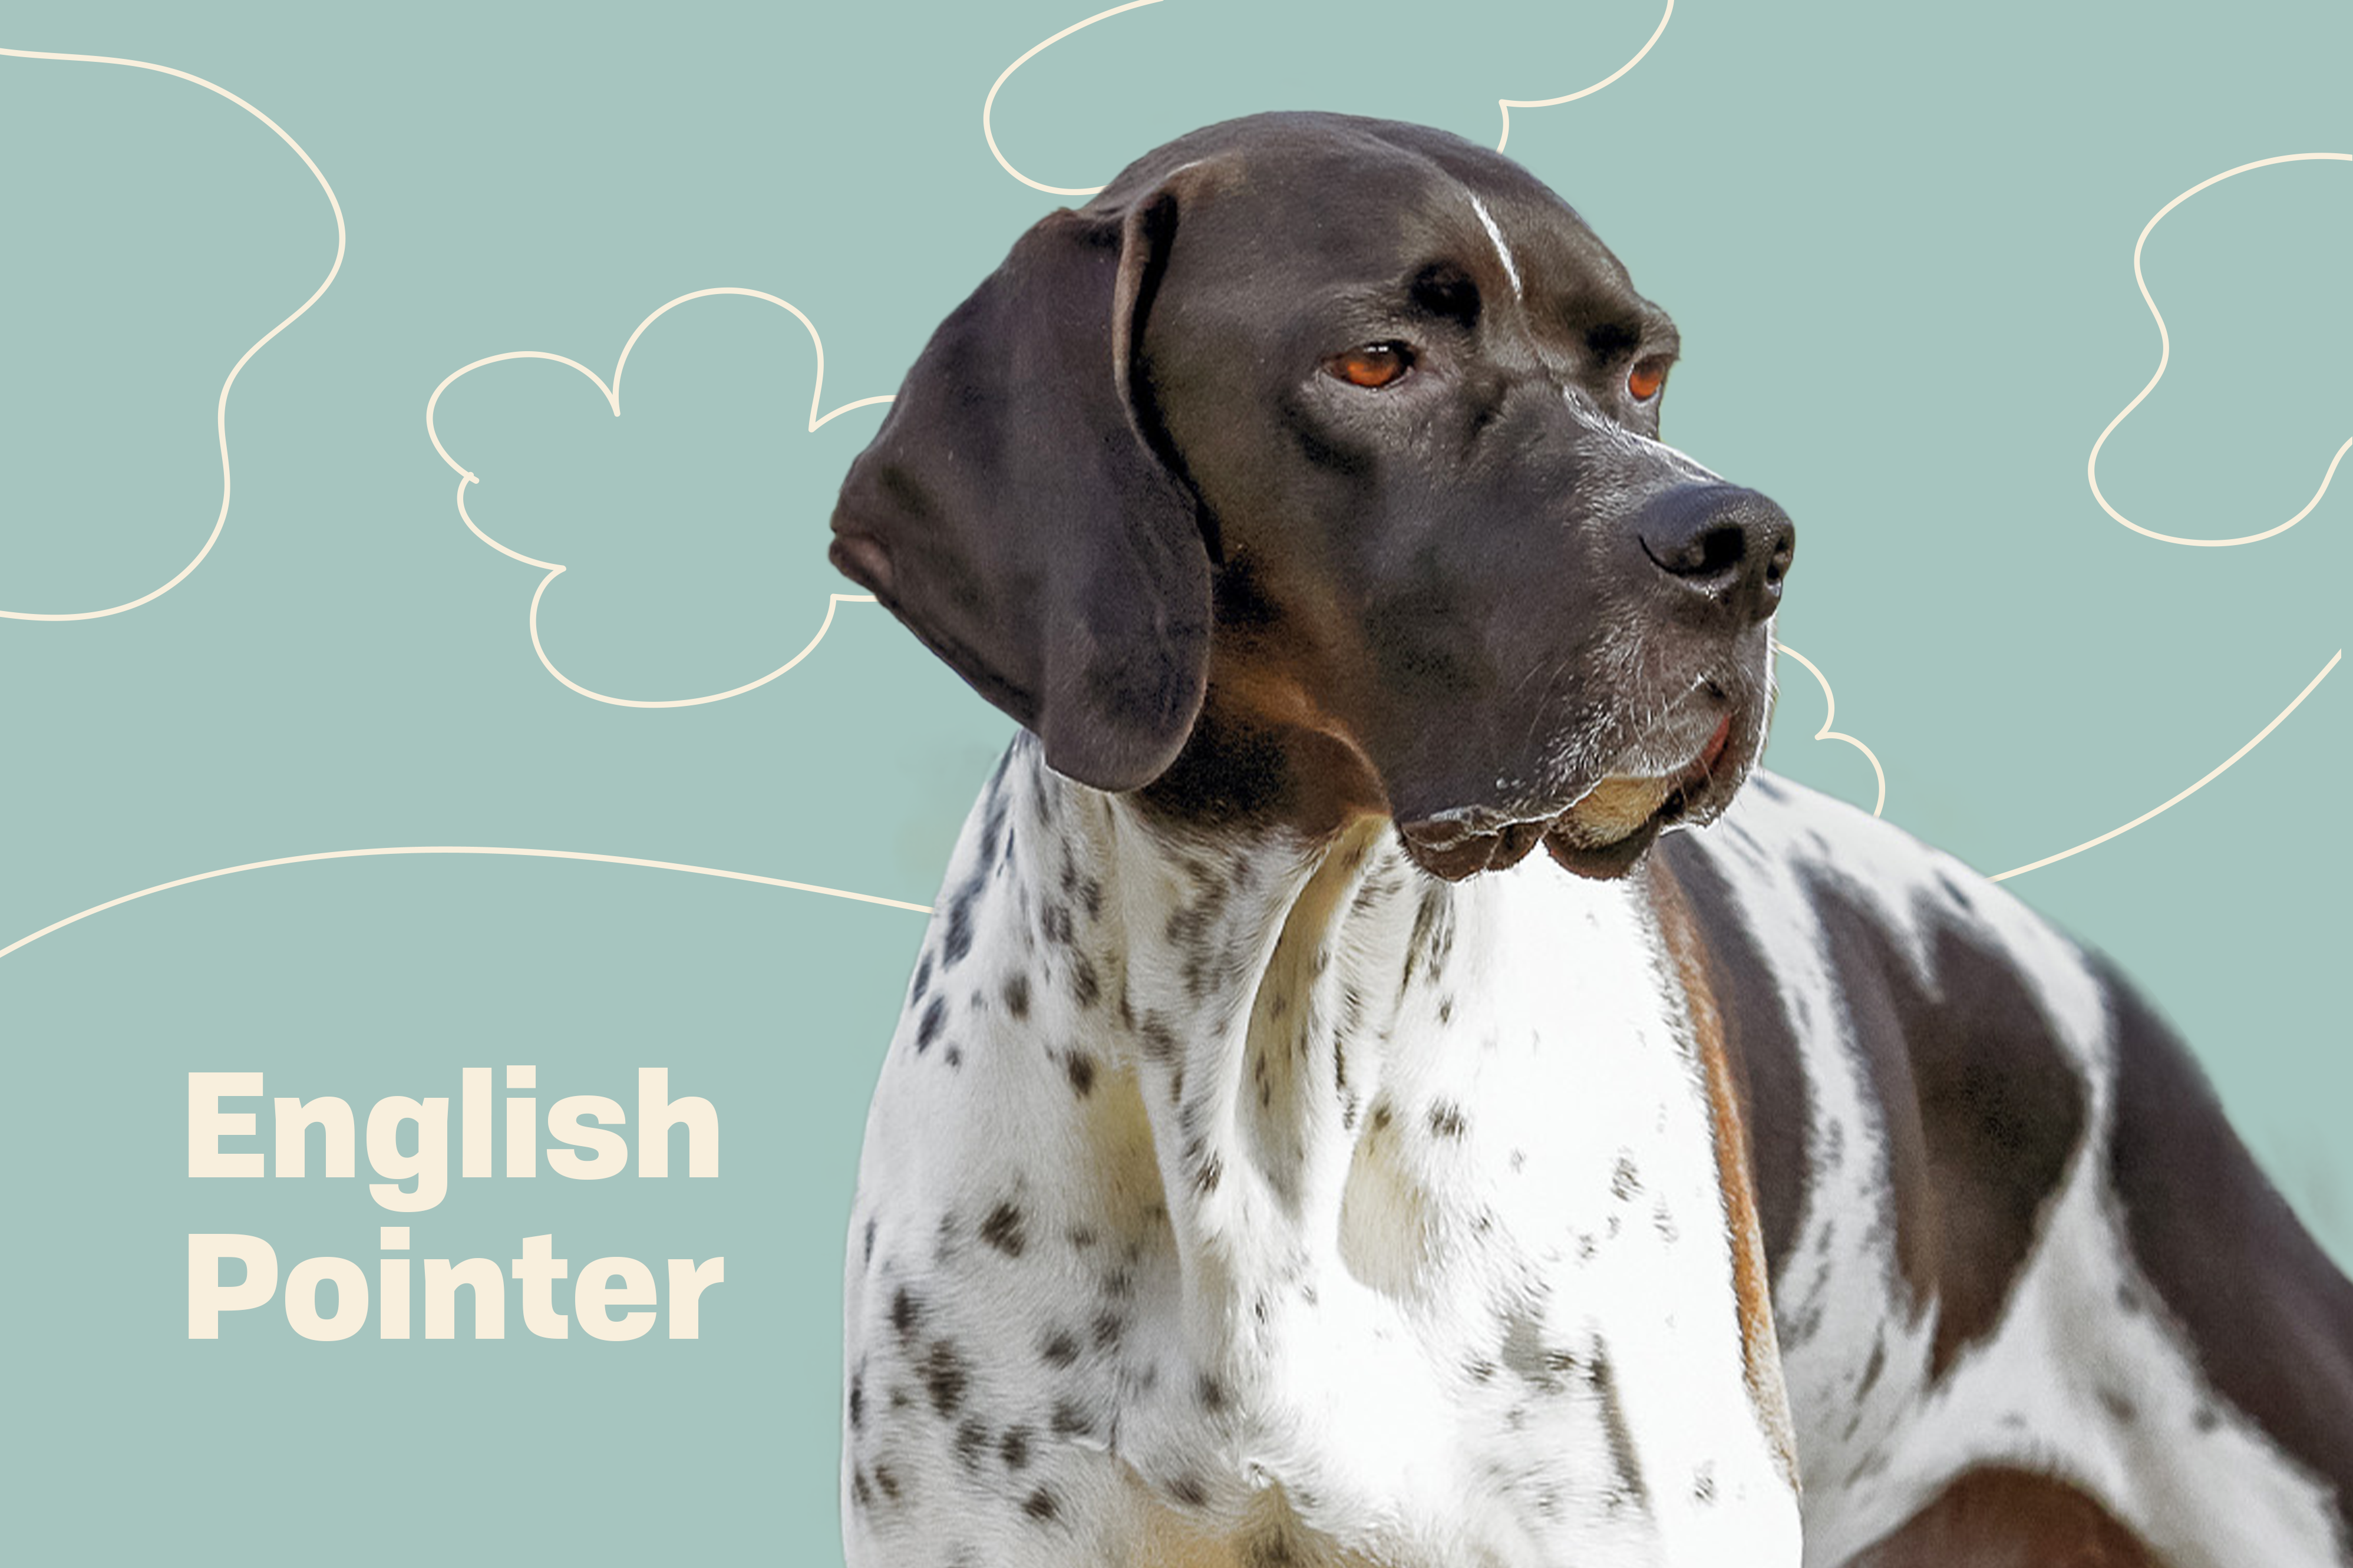 English Pointer on background of cloud illustration